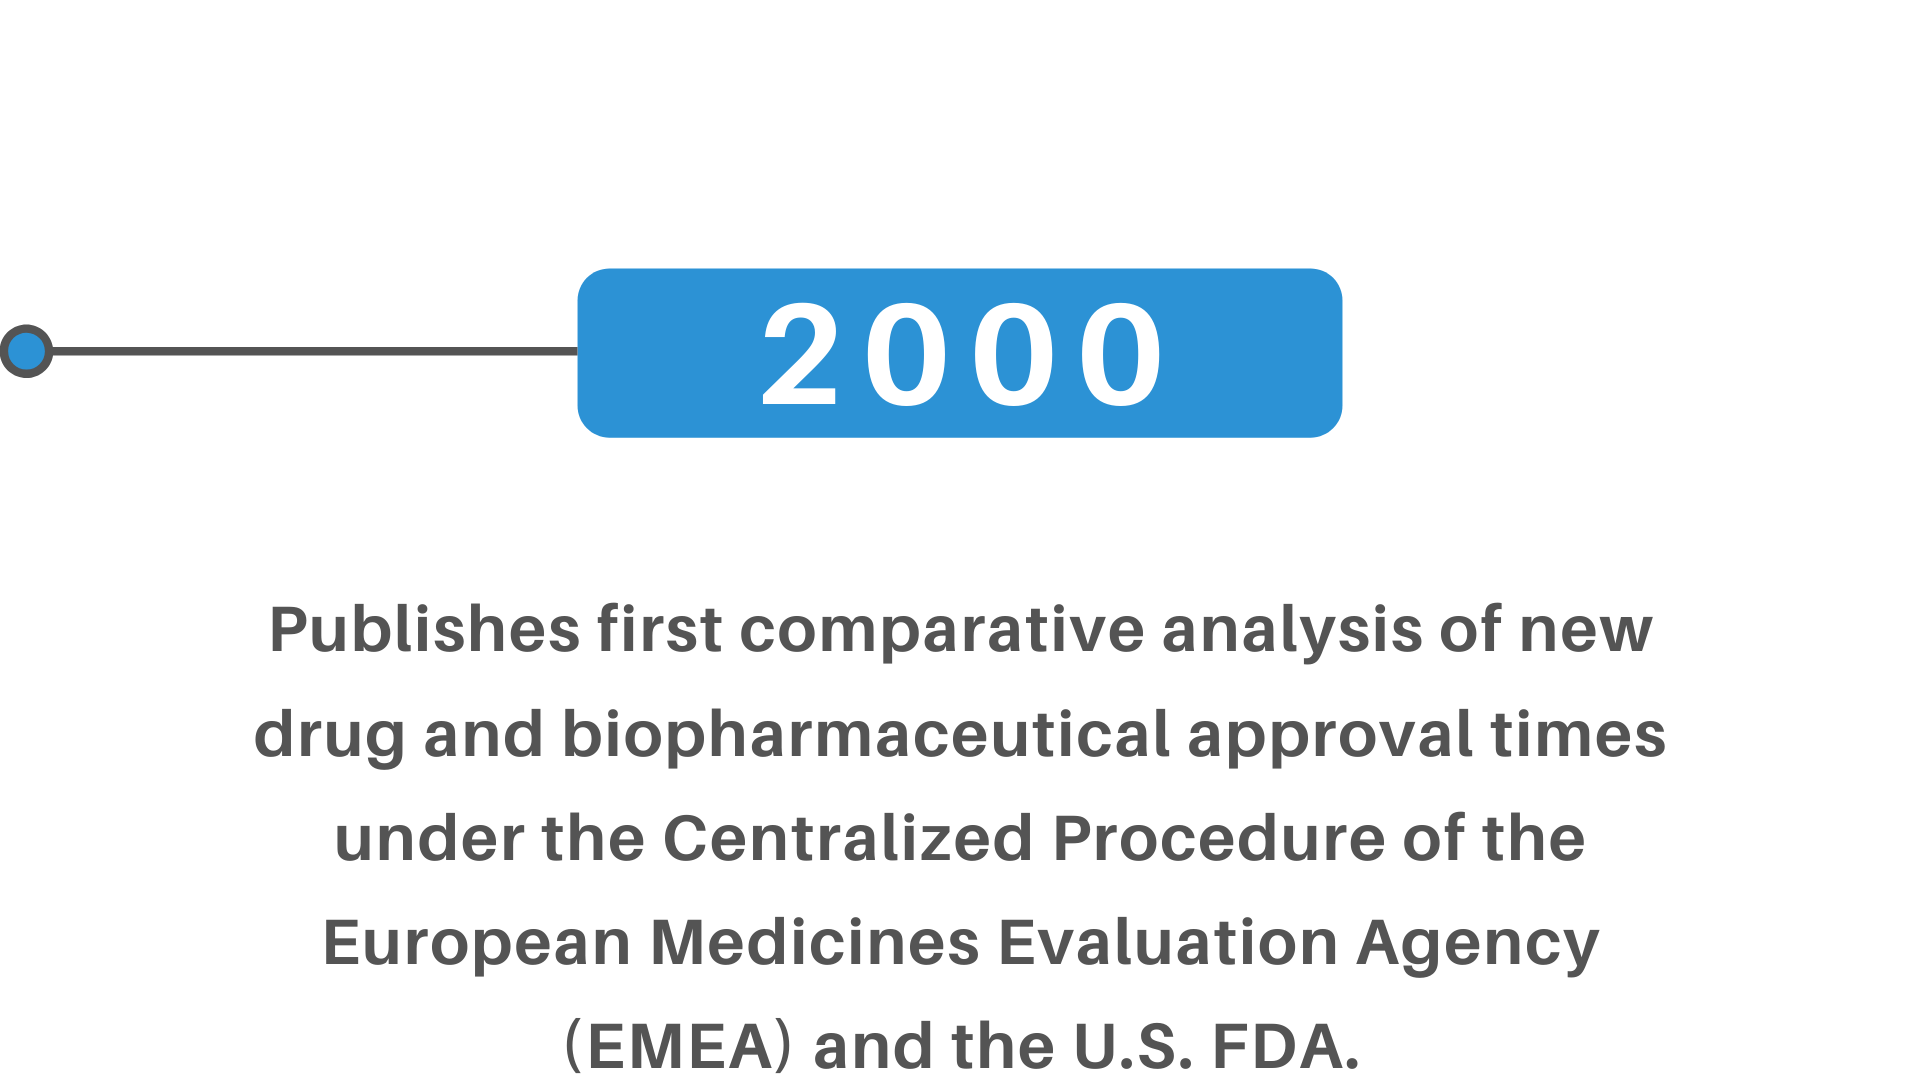 new drug biopharmaceutical approval times centralized procedure european medicines evaluation agency